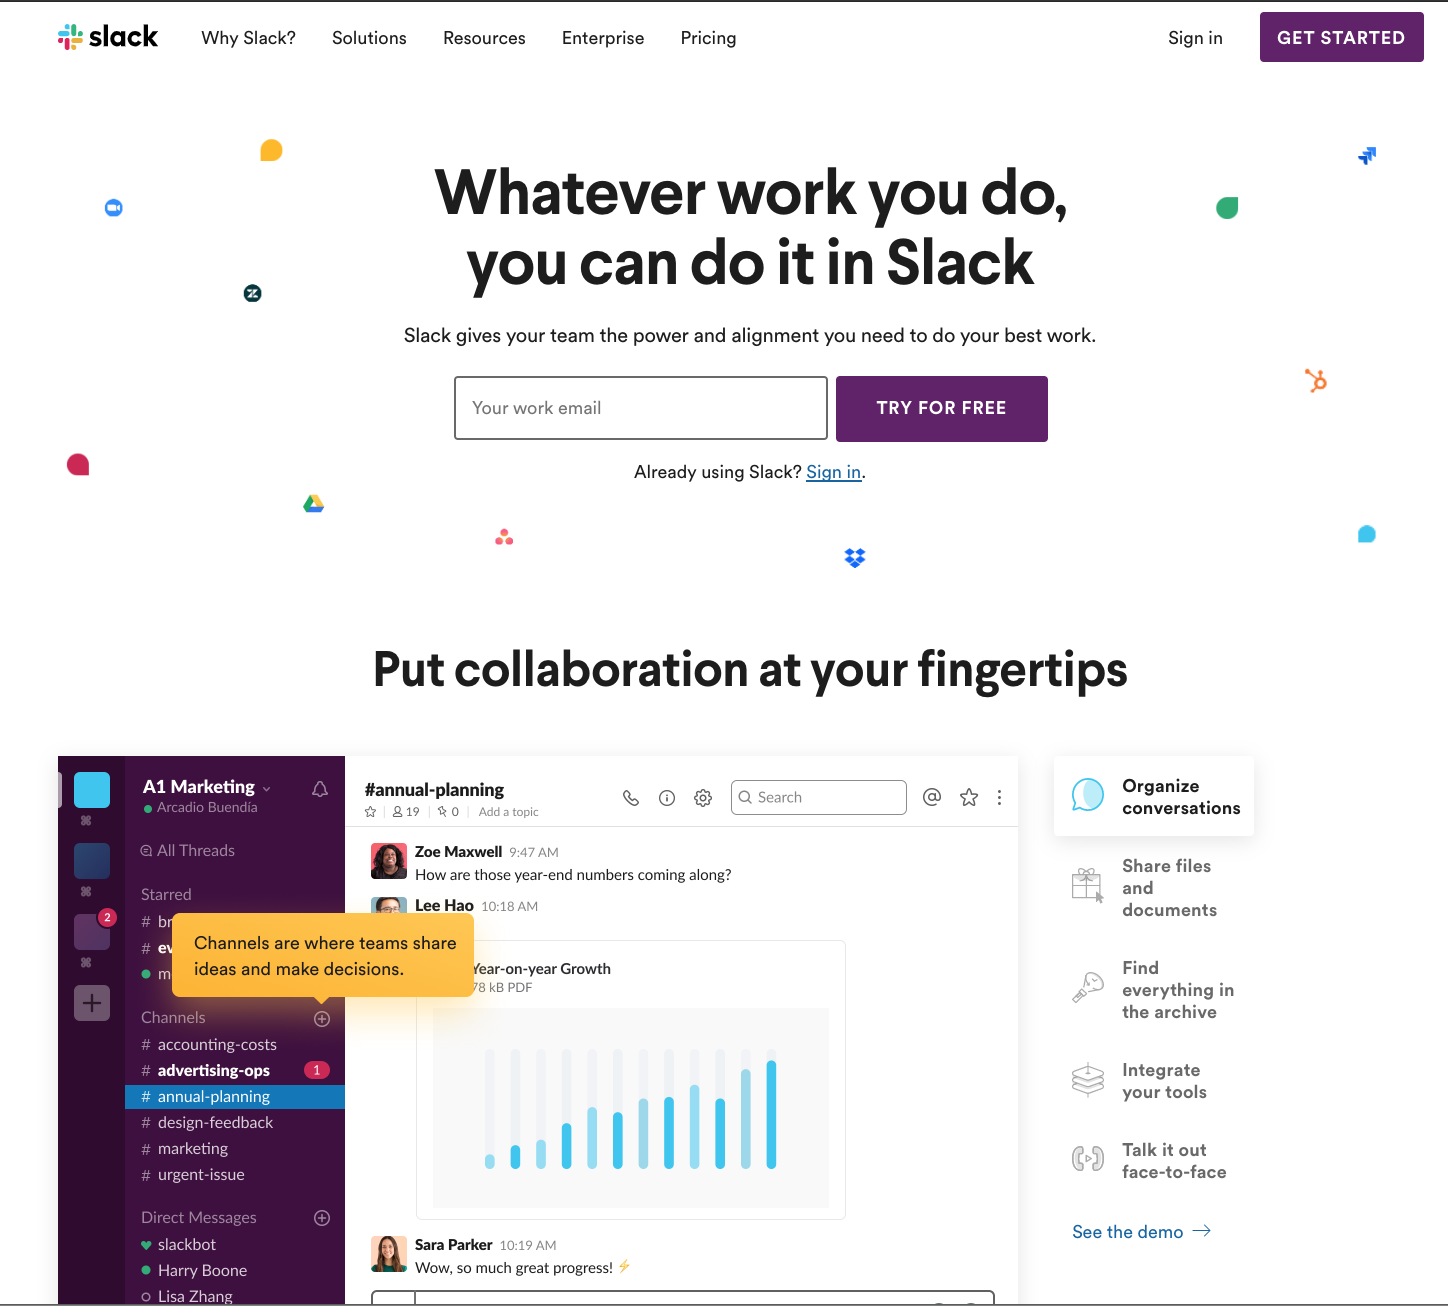 Slack website